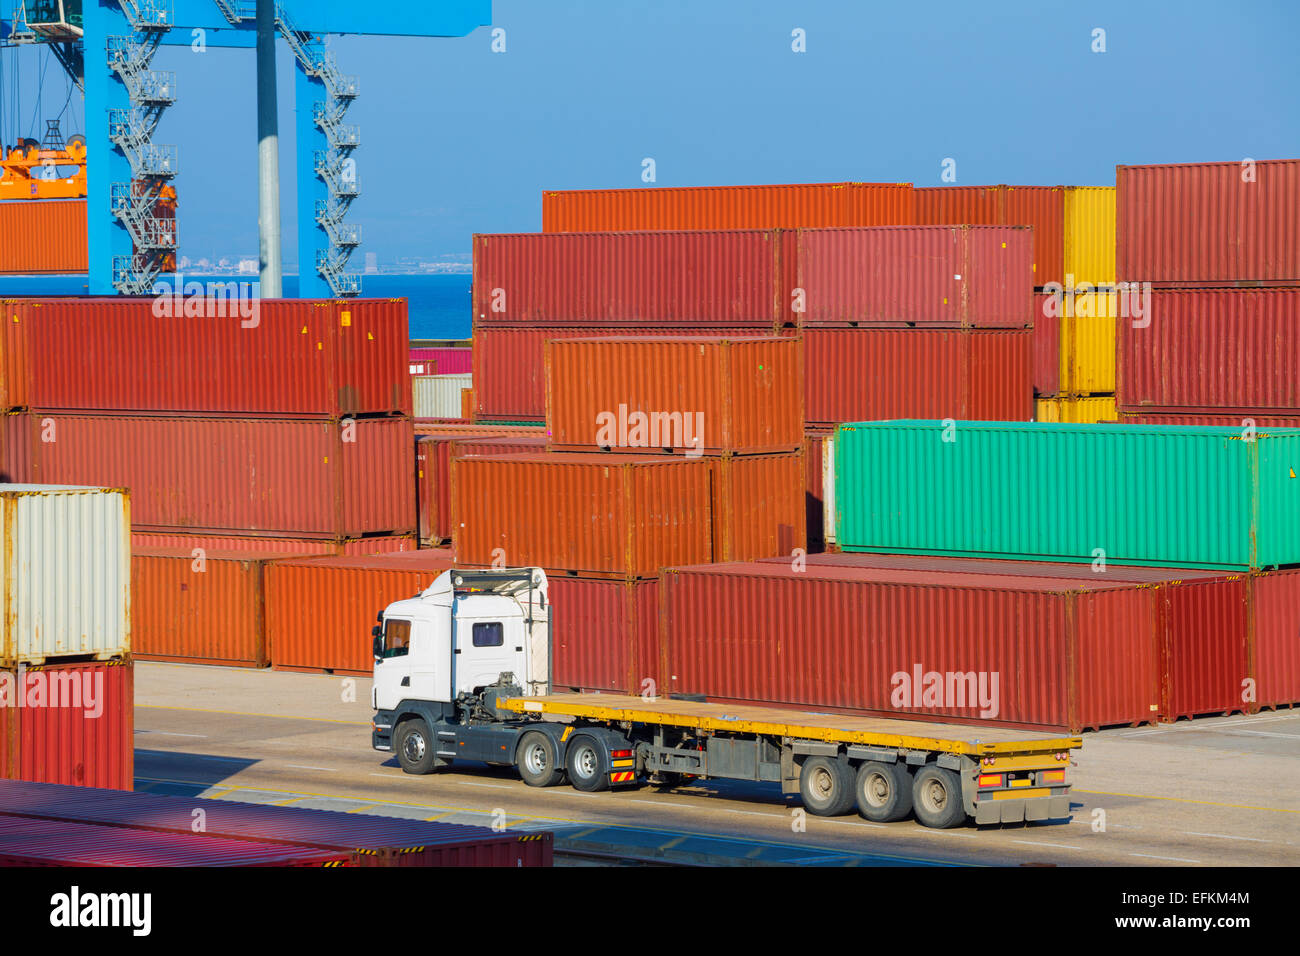 Cargo freight shipping containers at the docks storage area in the